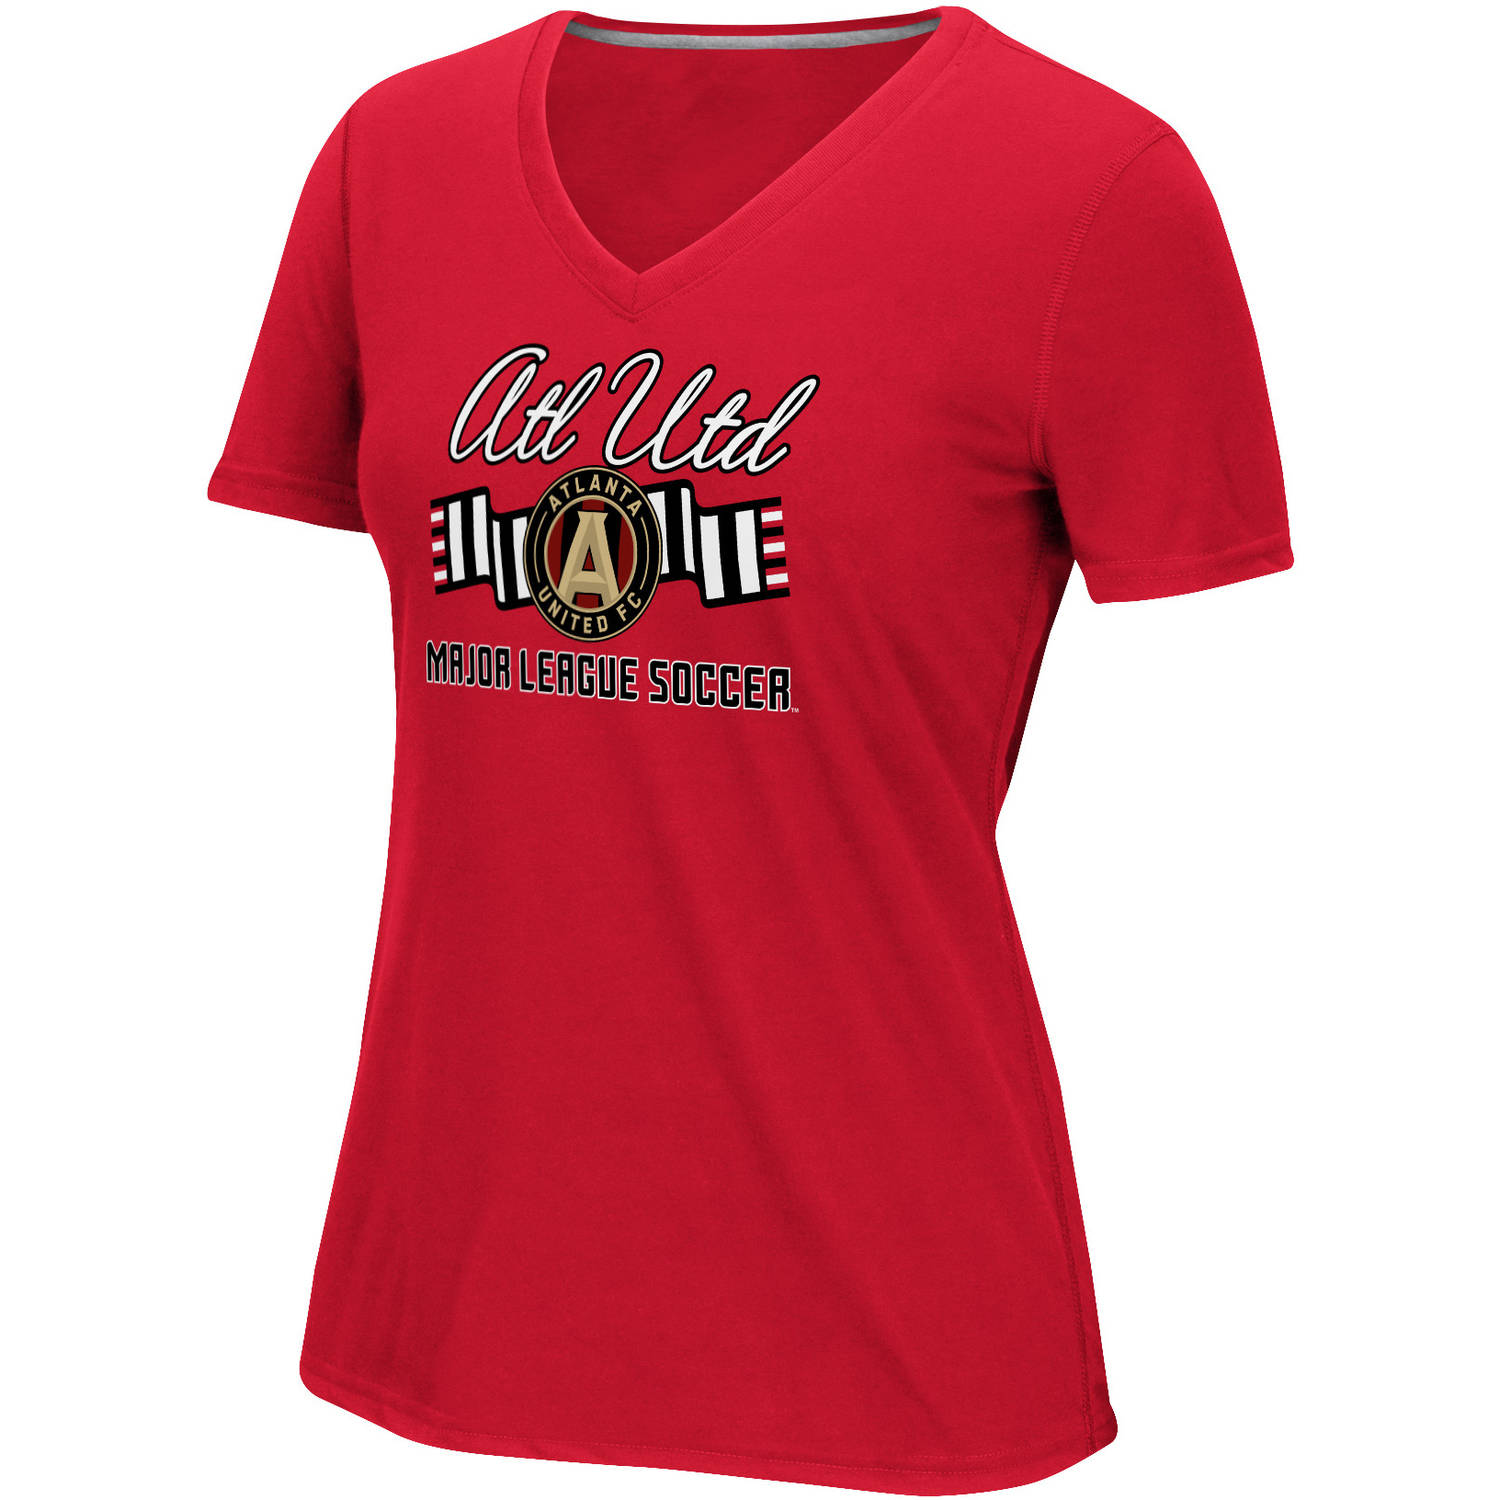 MLS-Atlanta United-Women's Middle Logo Scarf Tee